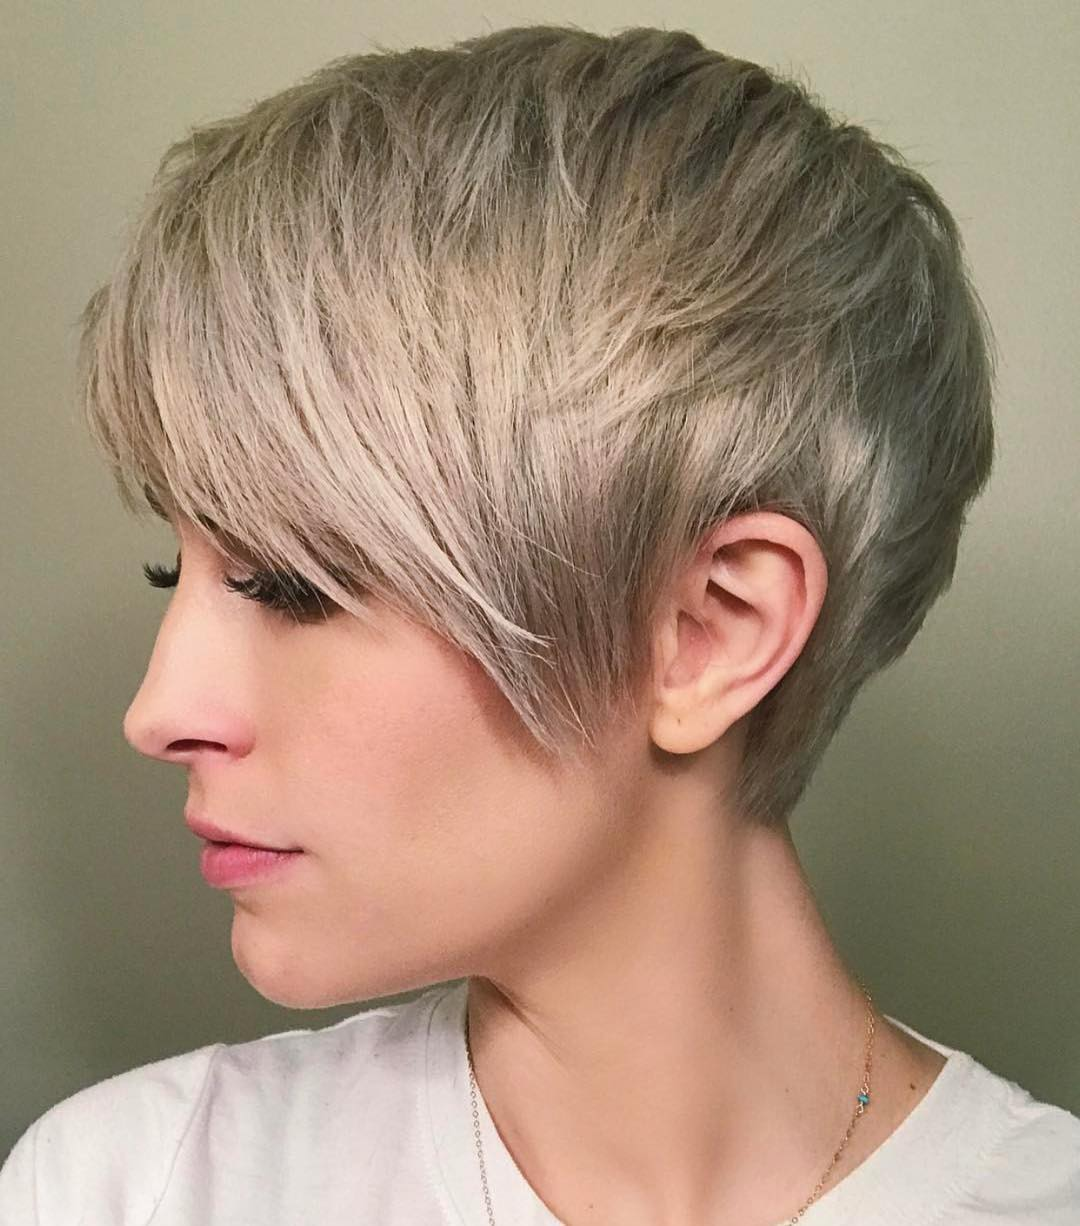 Short Straight Hairstyle Short Haircuts for